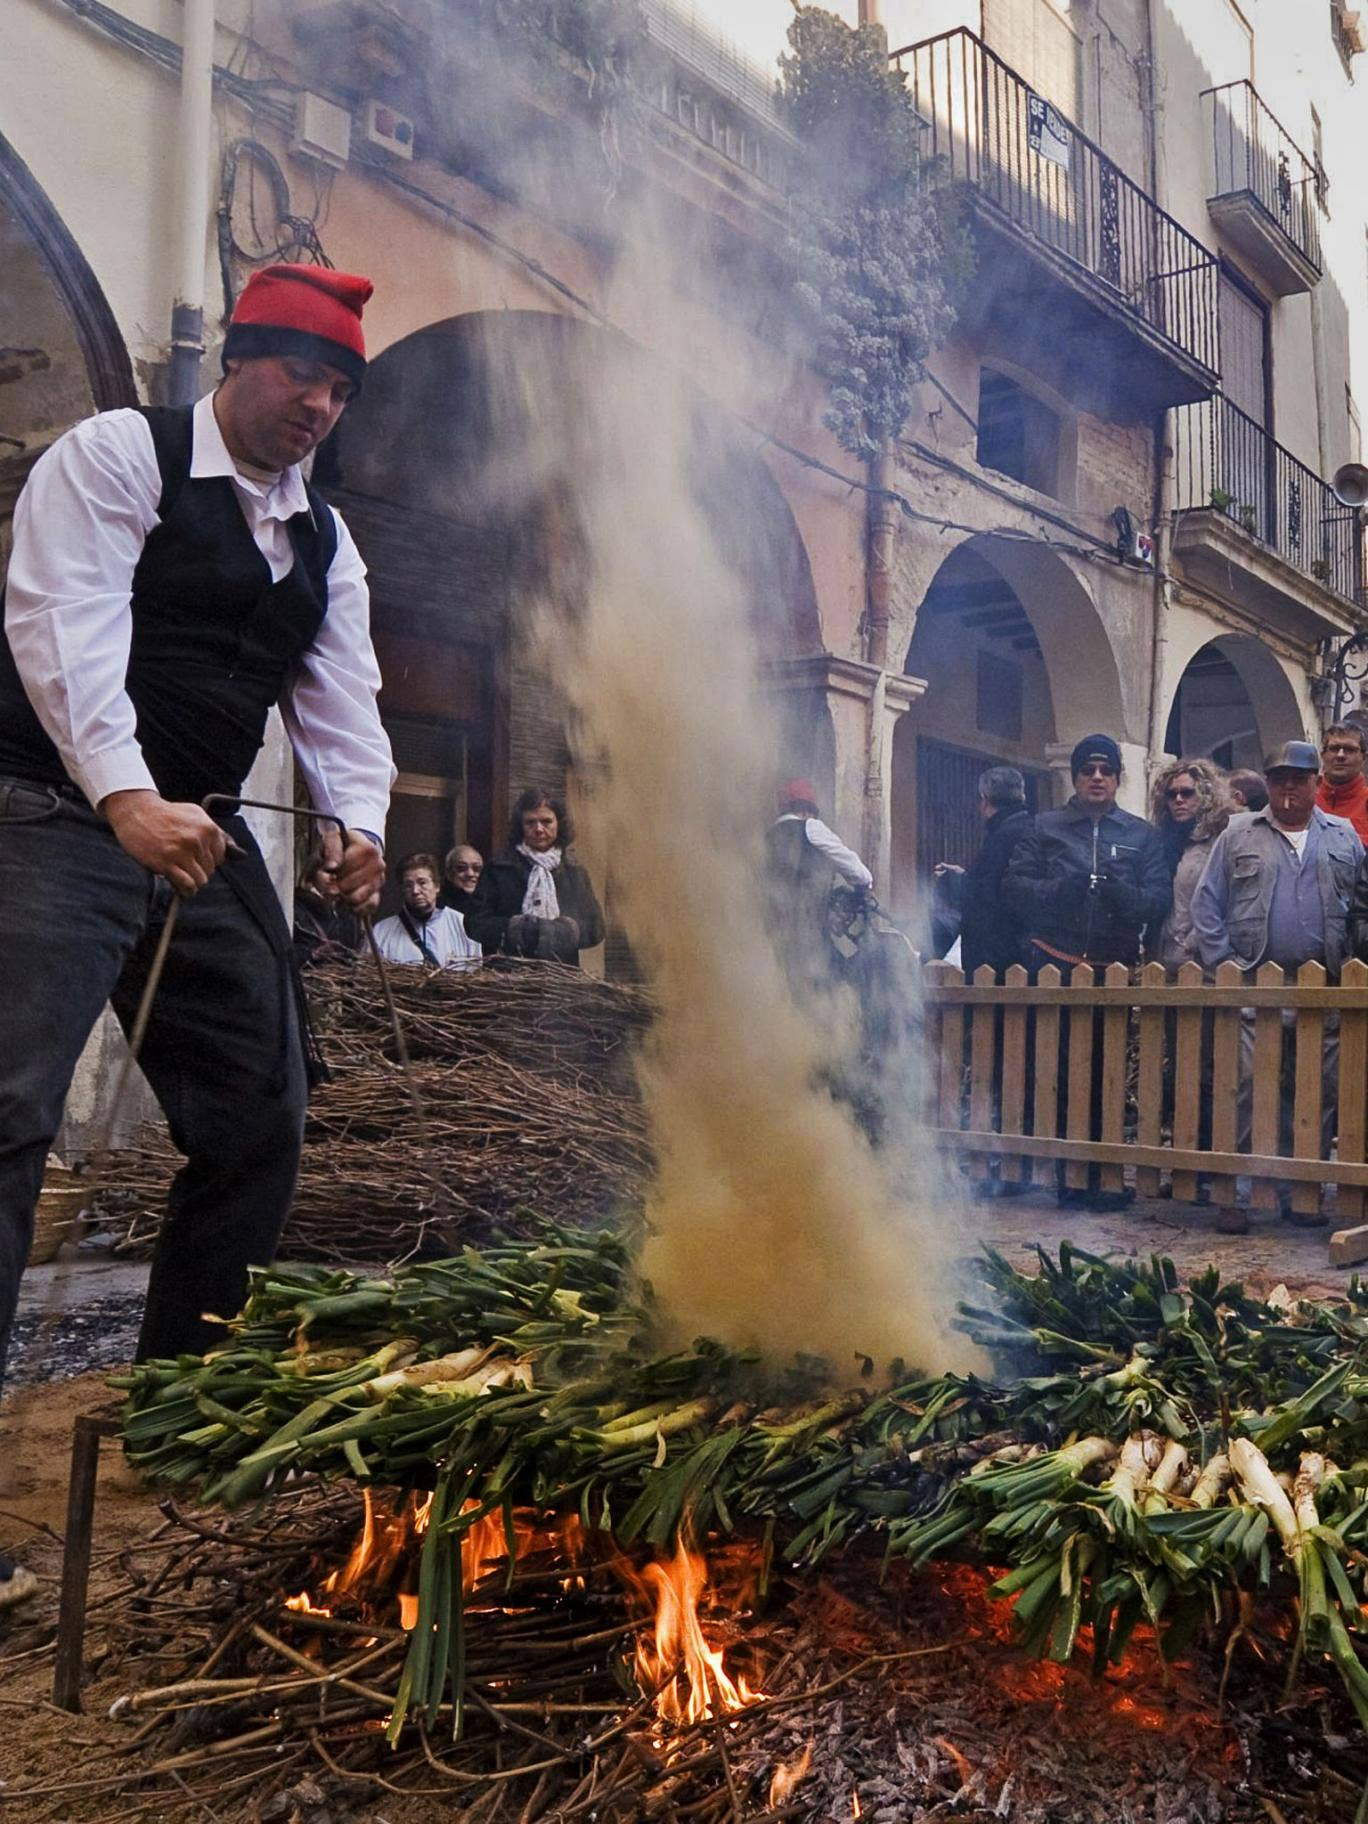 Flame grilled: a calçotada in Valls